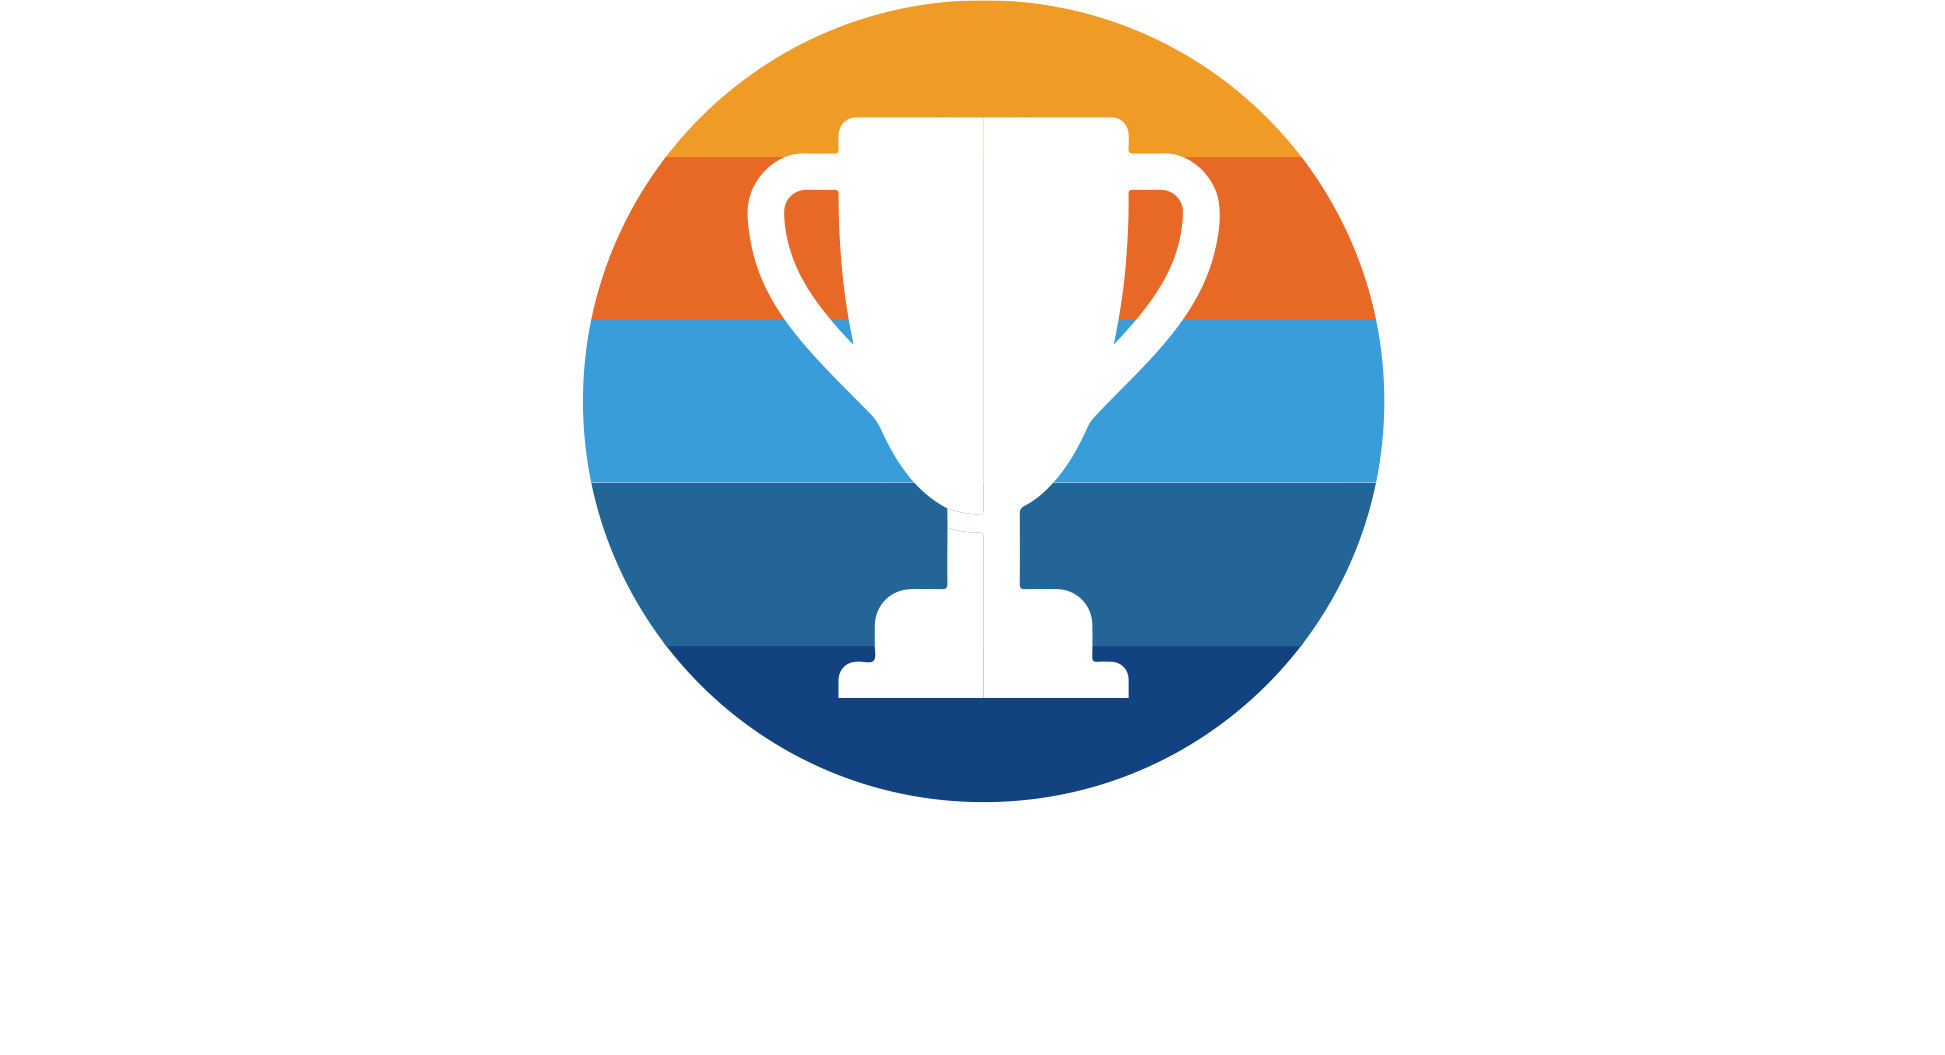 copa Home.png